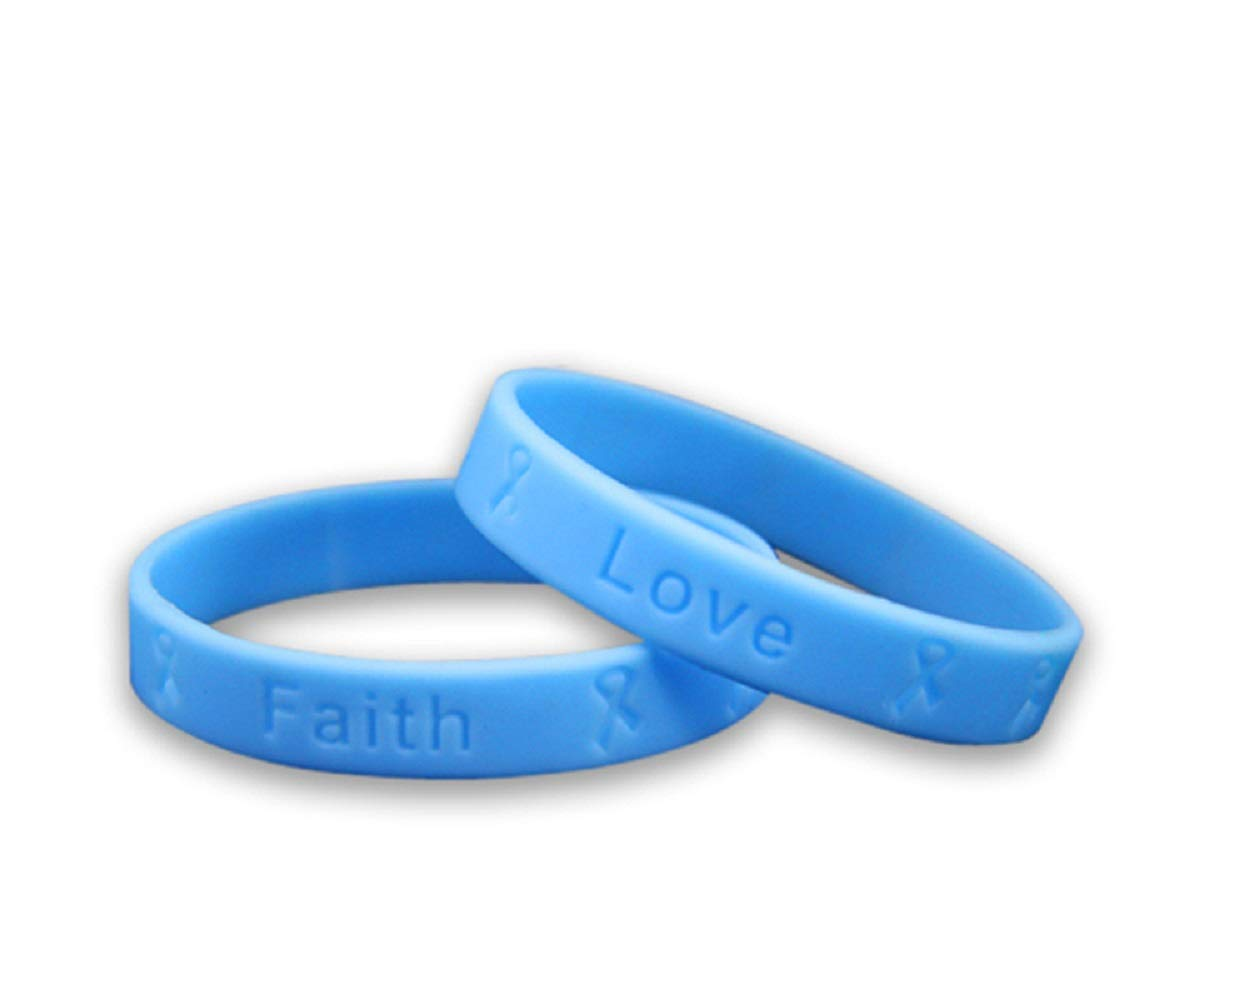 50 Pack Prostate Cancer Awareness Light Blue Silicone Bracelets - Adult Size - (50 Bracelets - Wholesale) by Fundraising For A Cause